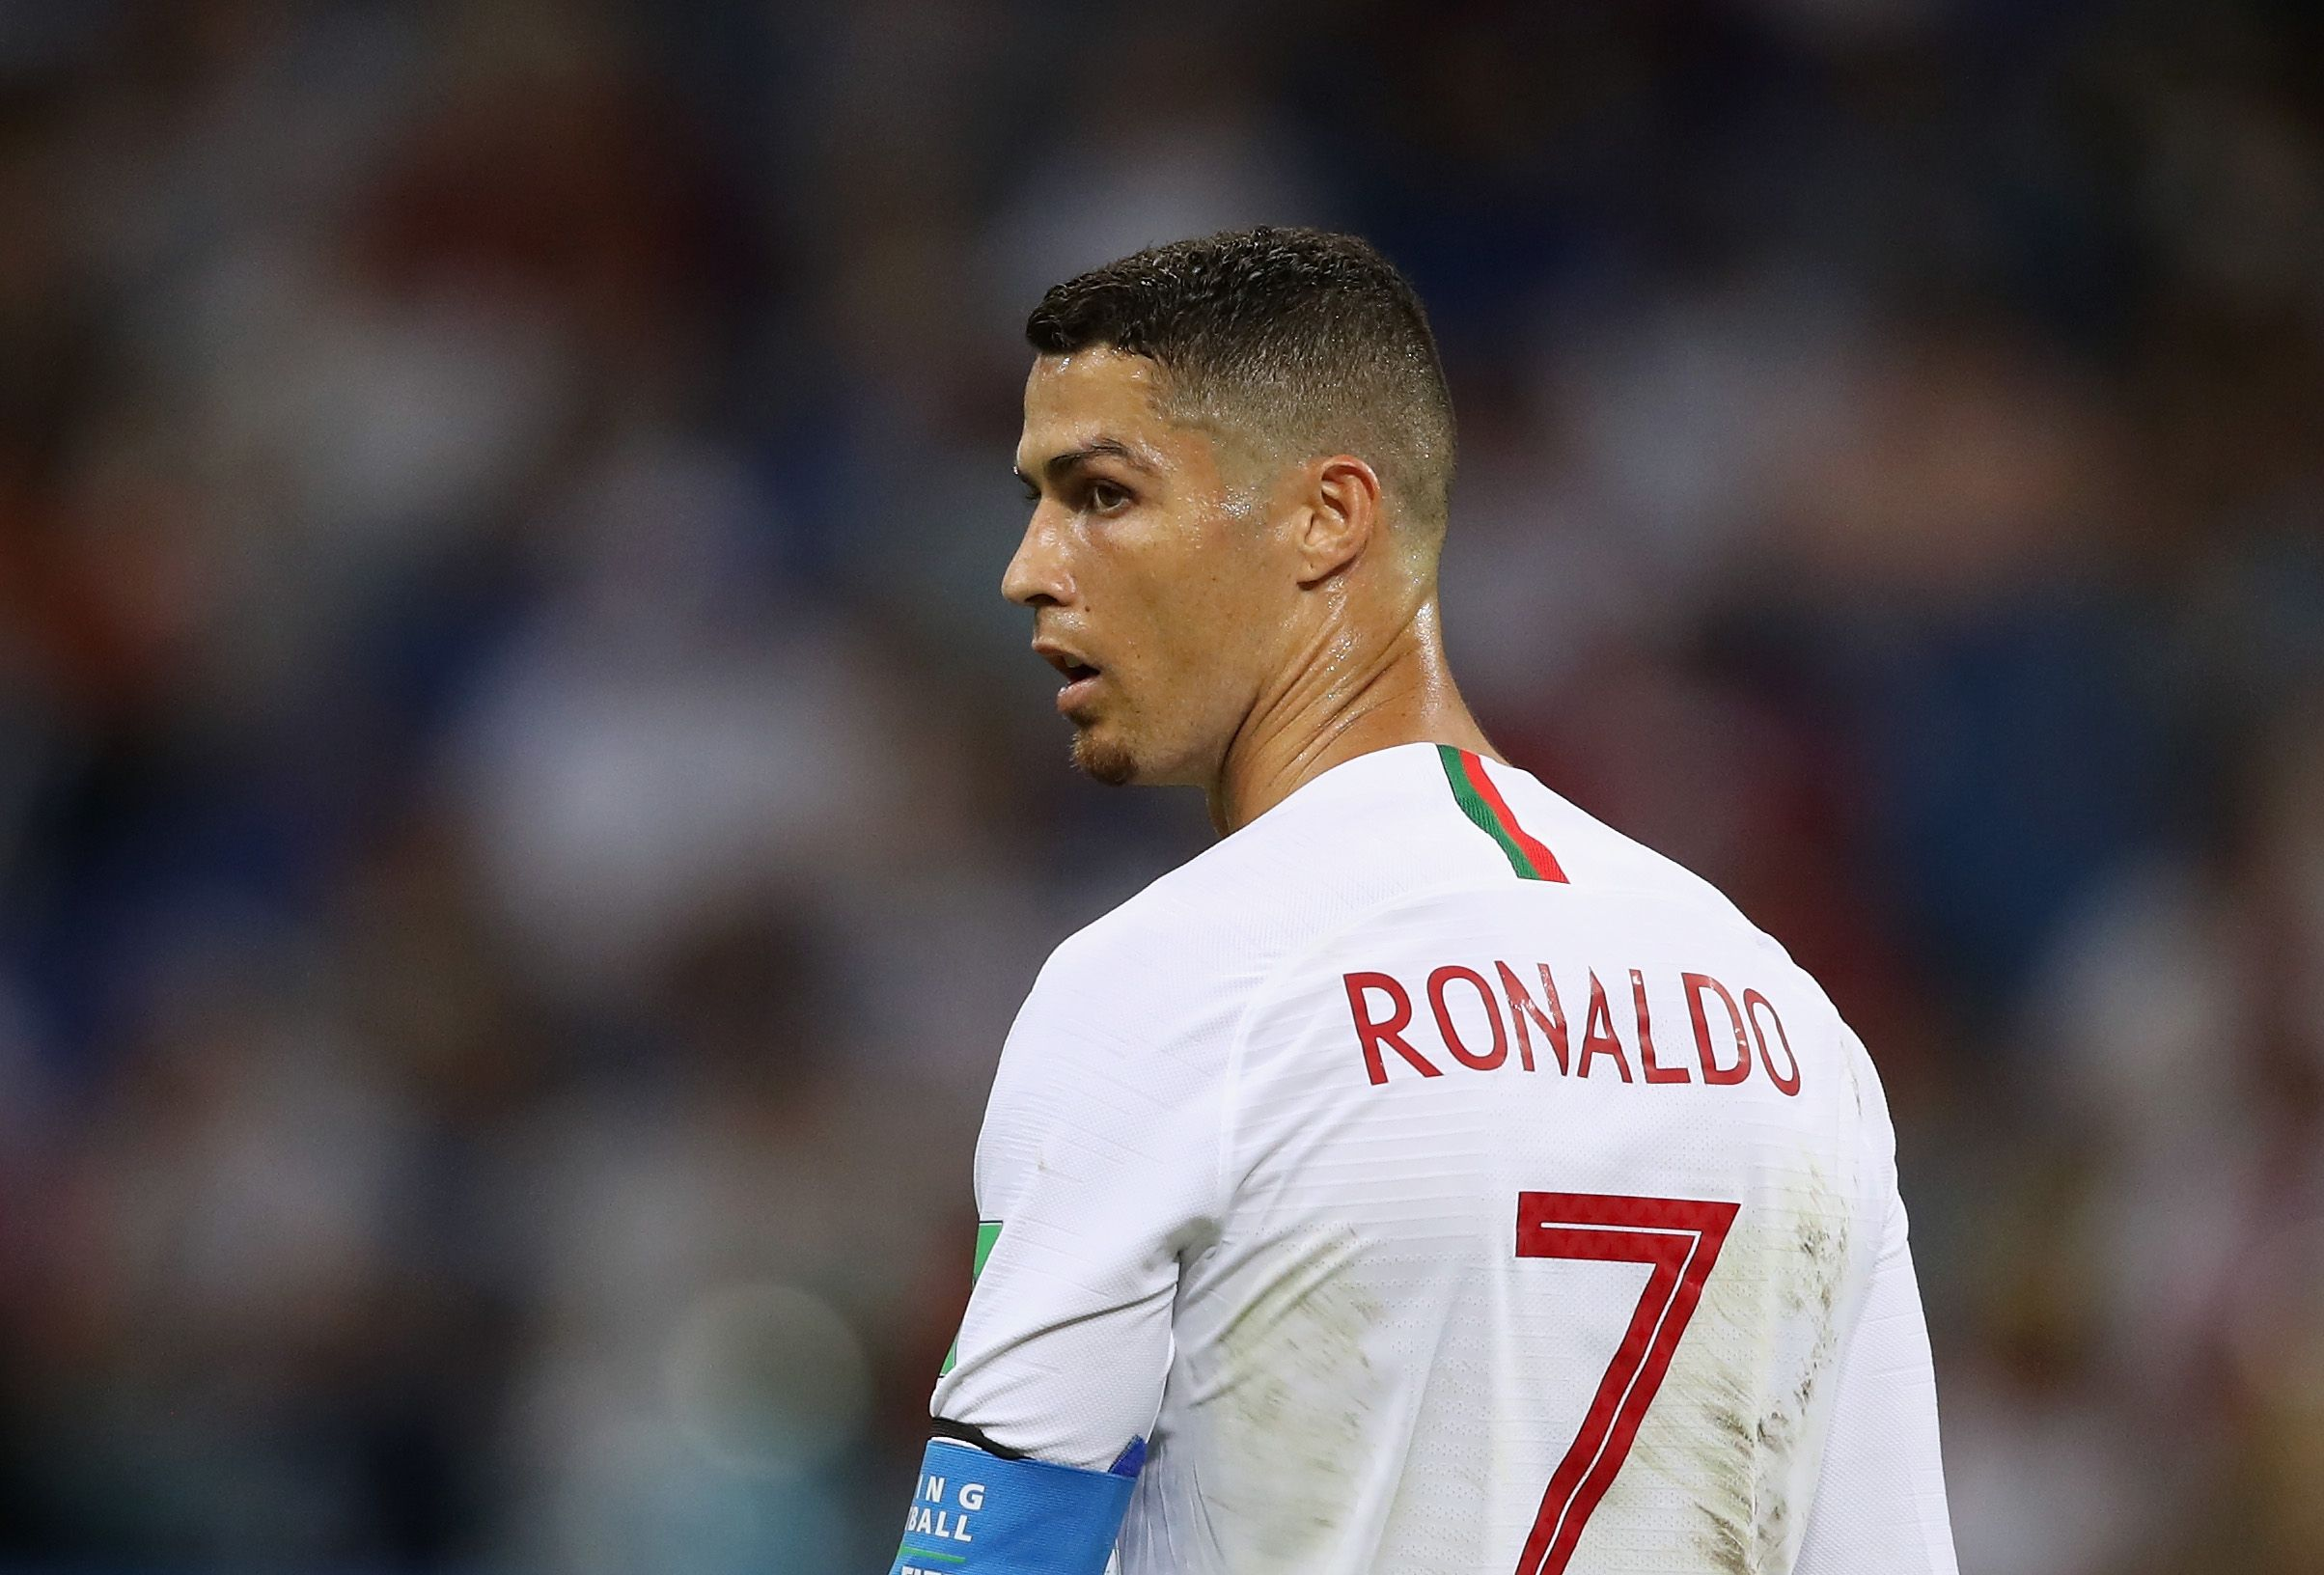 c4258ad53 Cristiano Ronaldo Transfer Latest  Juventus Legend Claims CR7 Has Already  Signed Serie A Deal